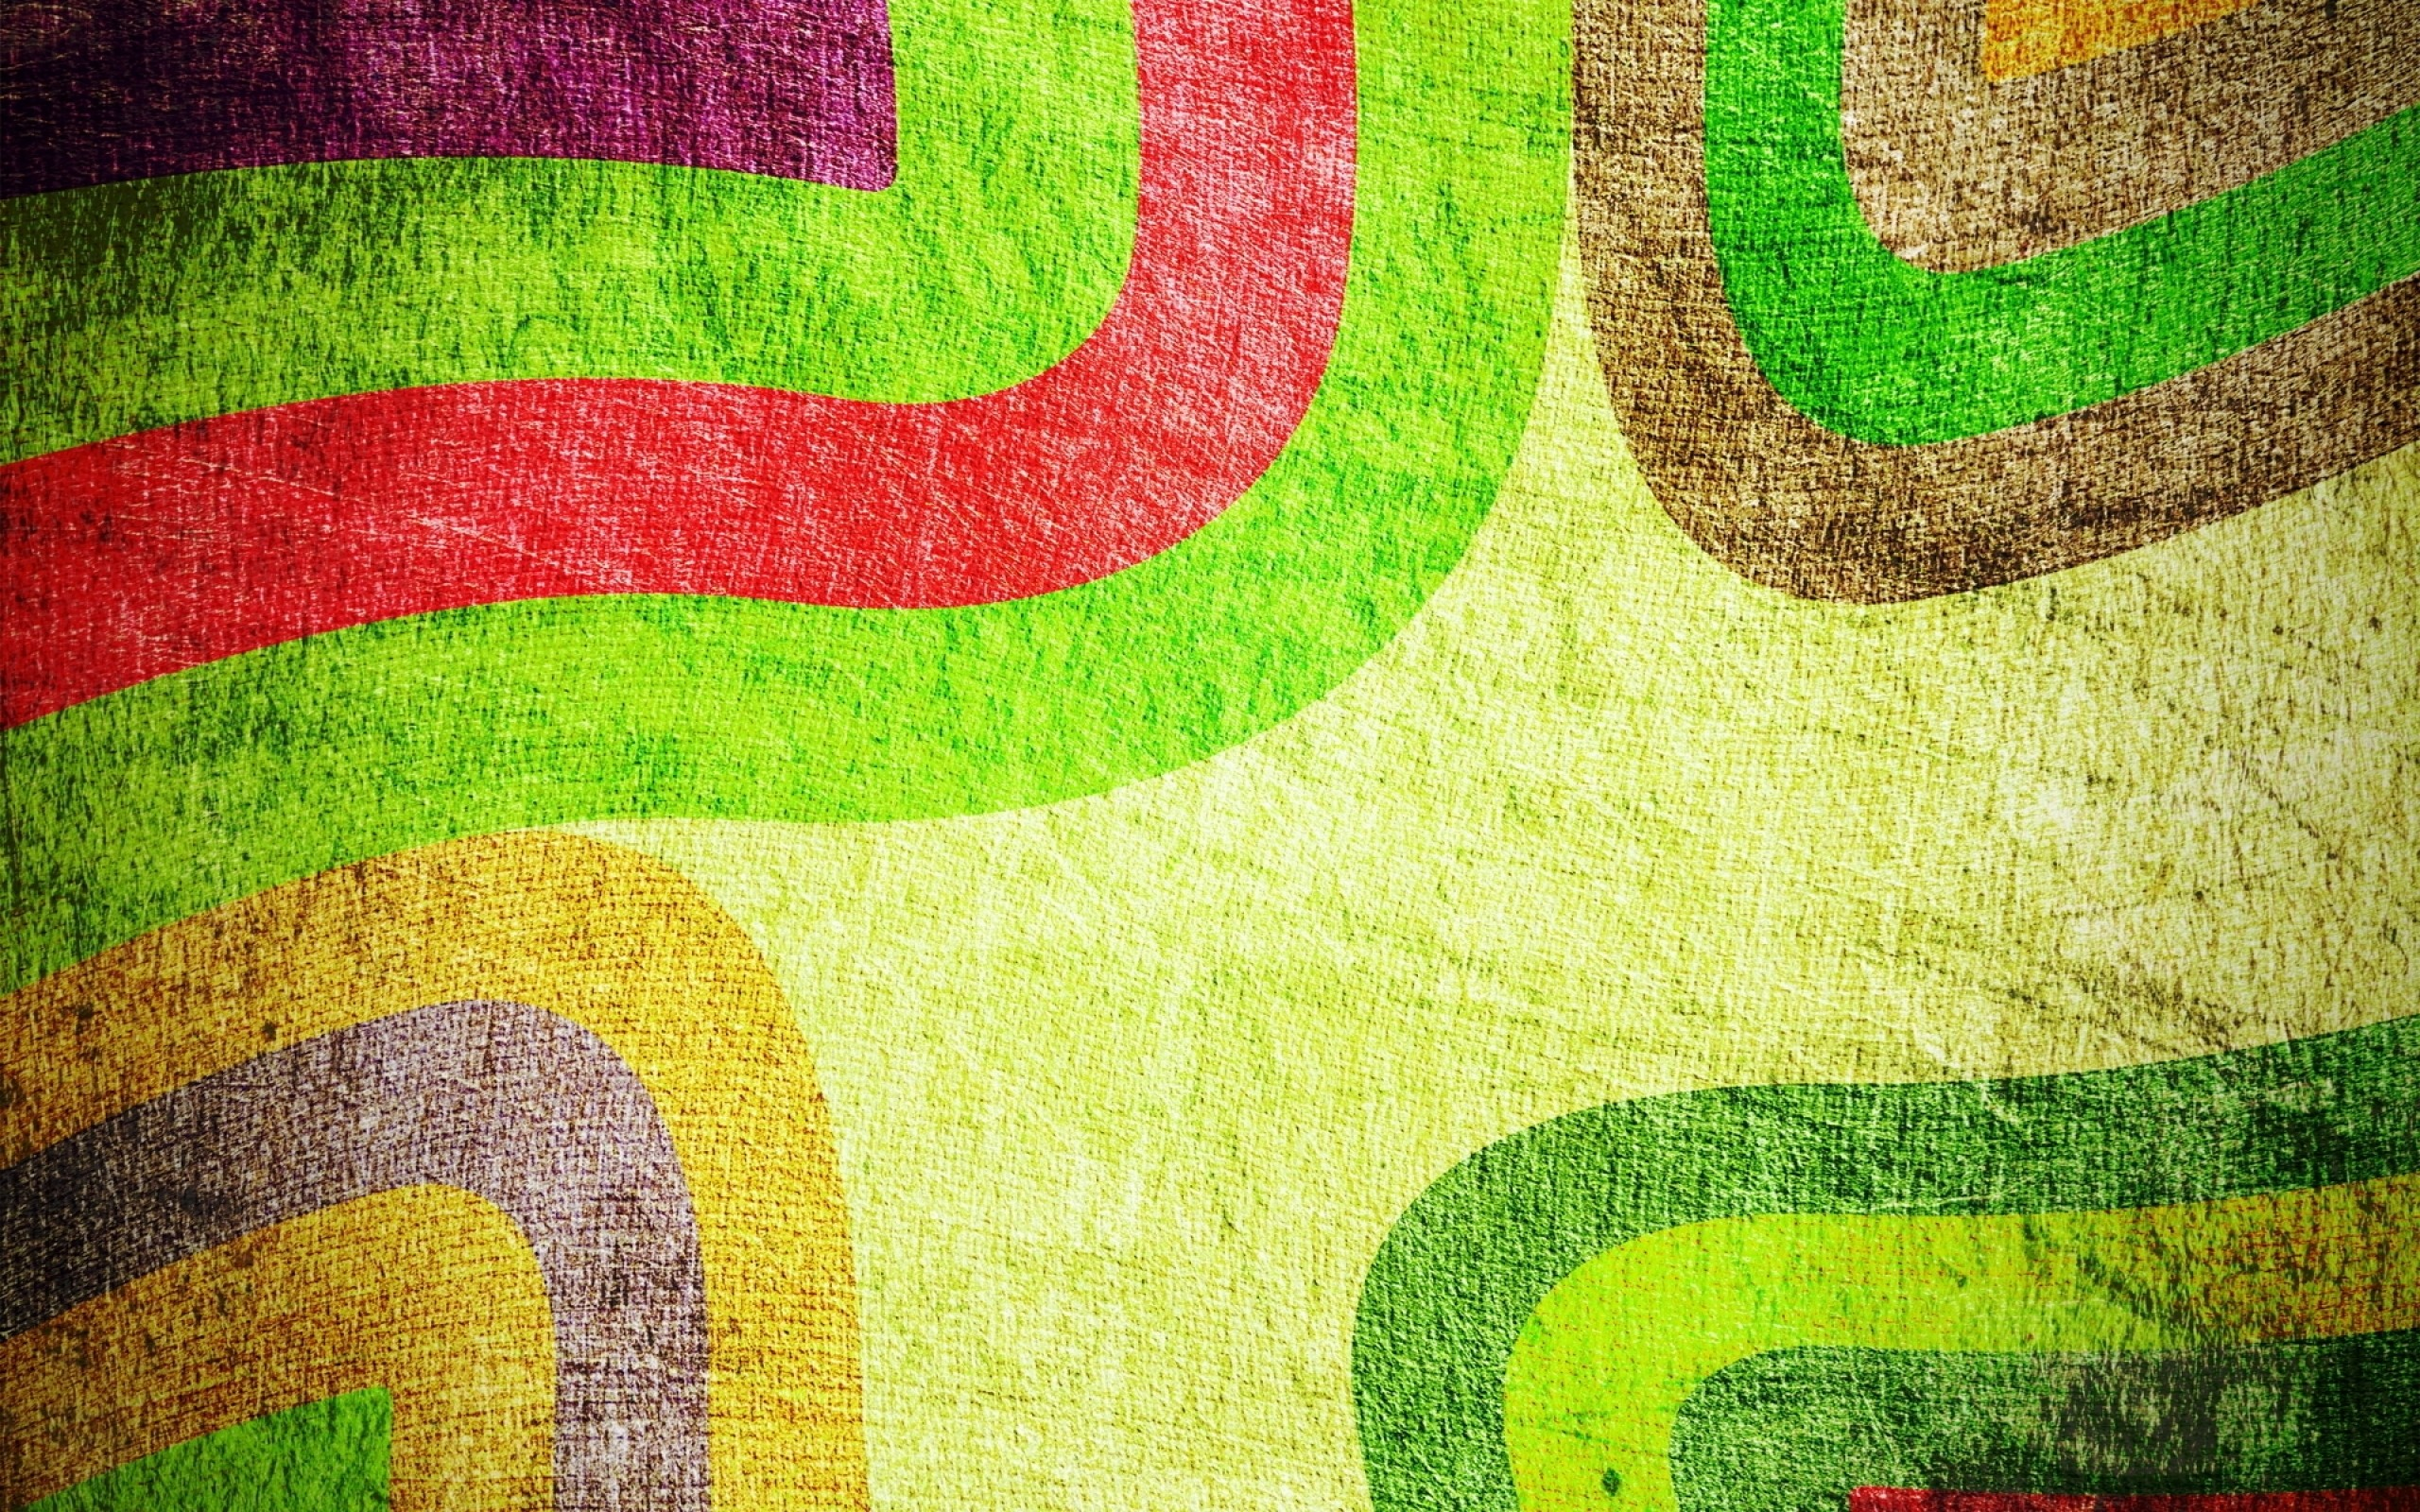 retro colorful background hd - photo #13